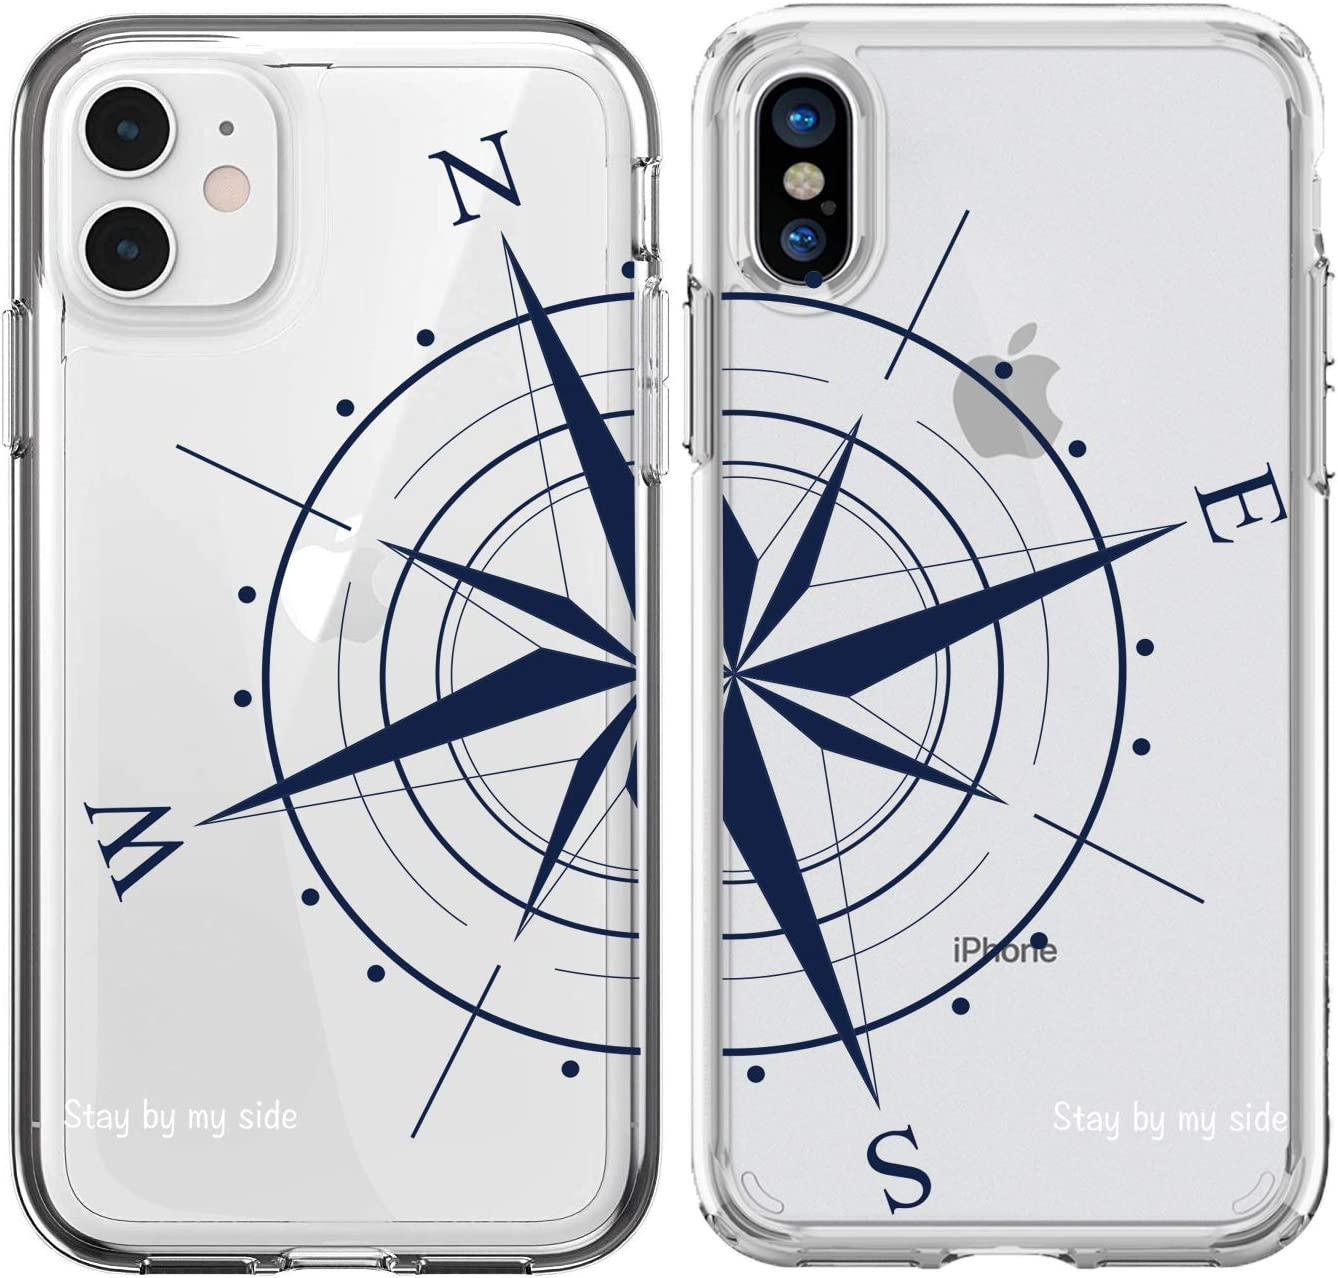 Shark Compatible Best Friends Style/Boyfriend&Girlfriend Compass/Stay by My Side Matching Couple Cases for iPhone 11